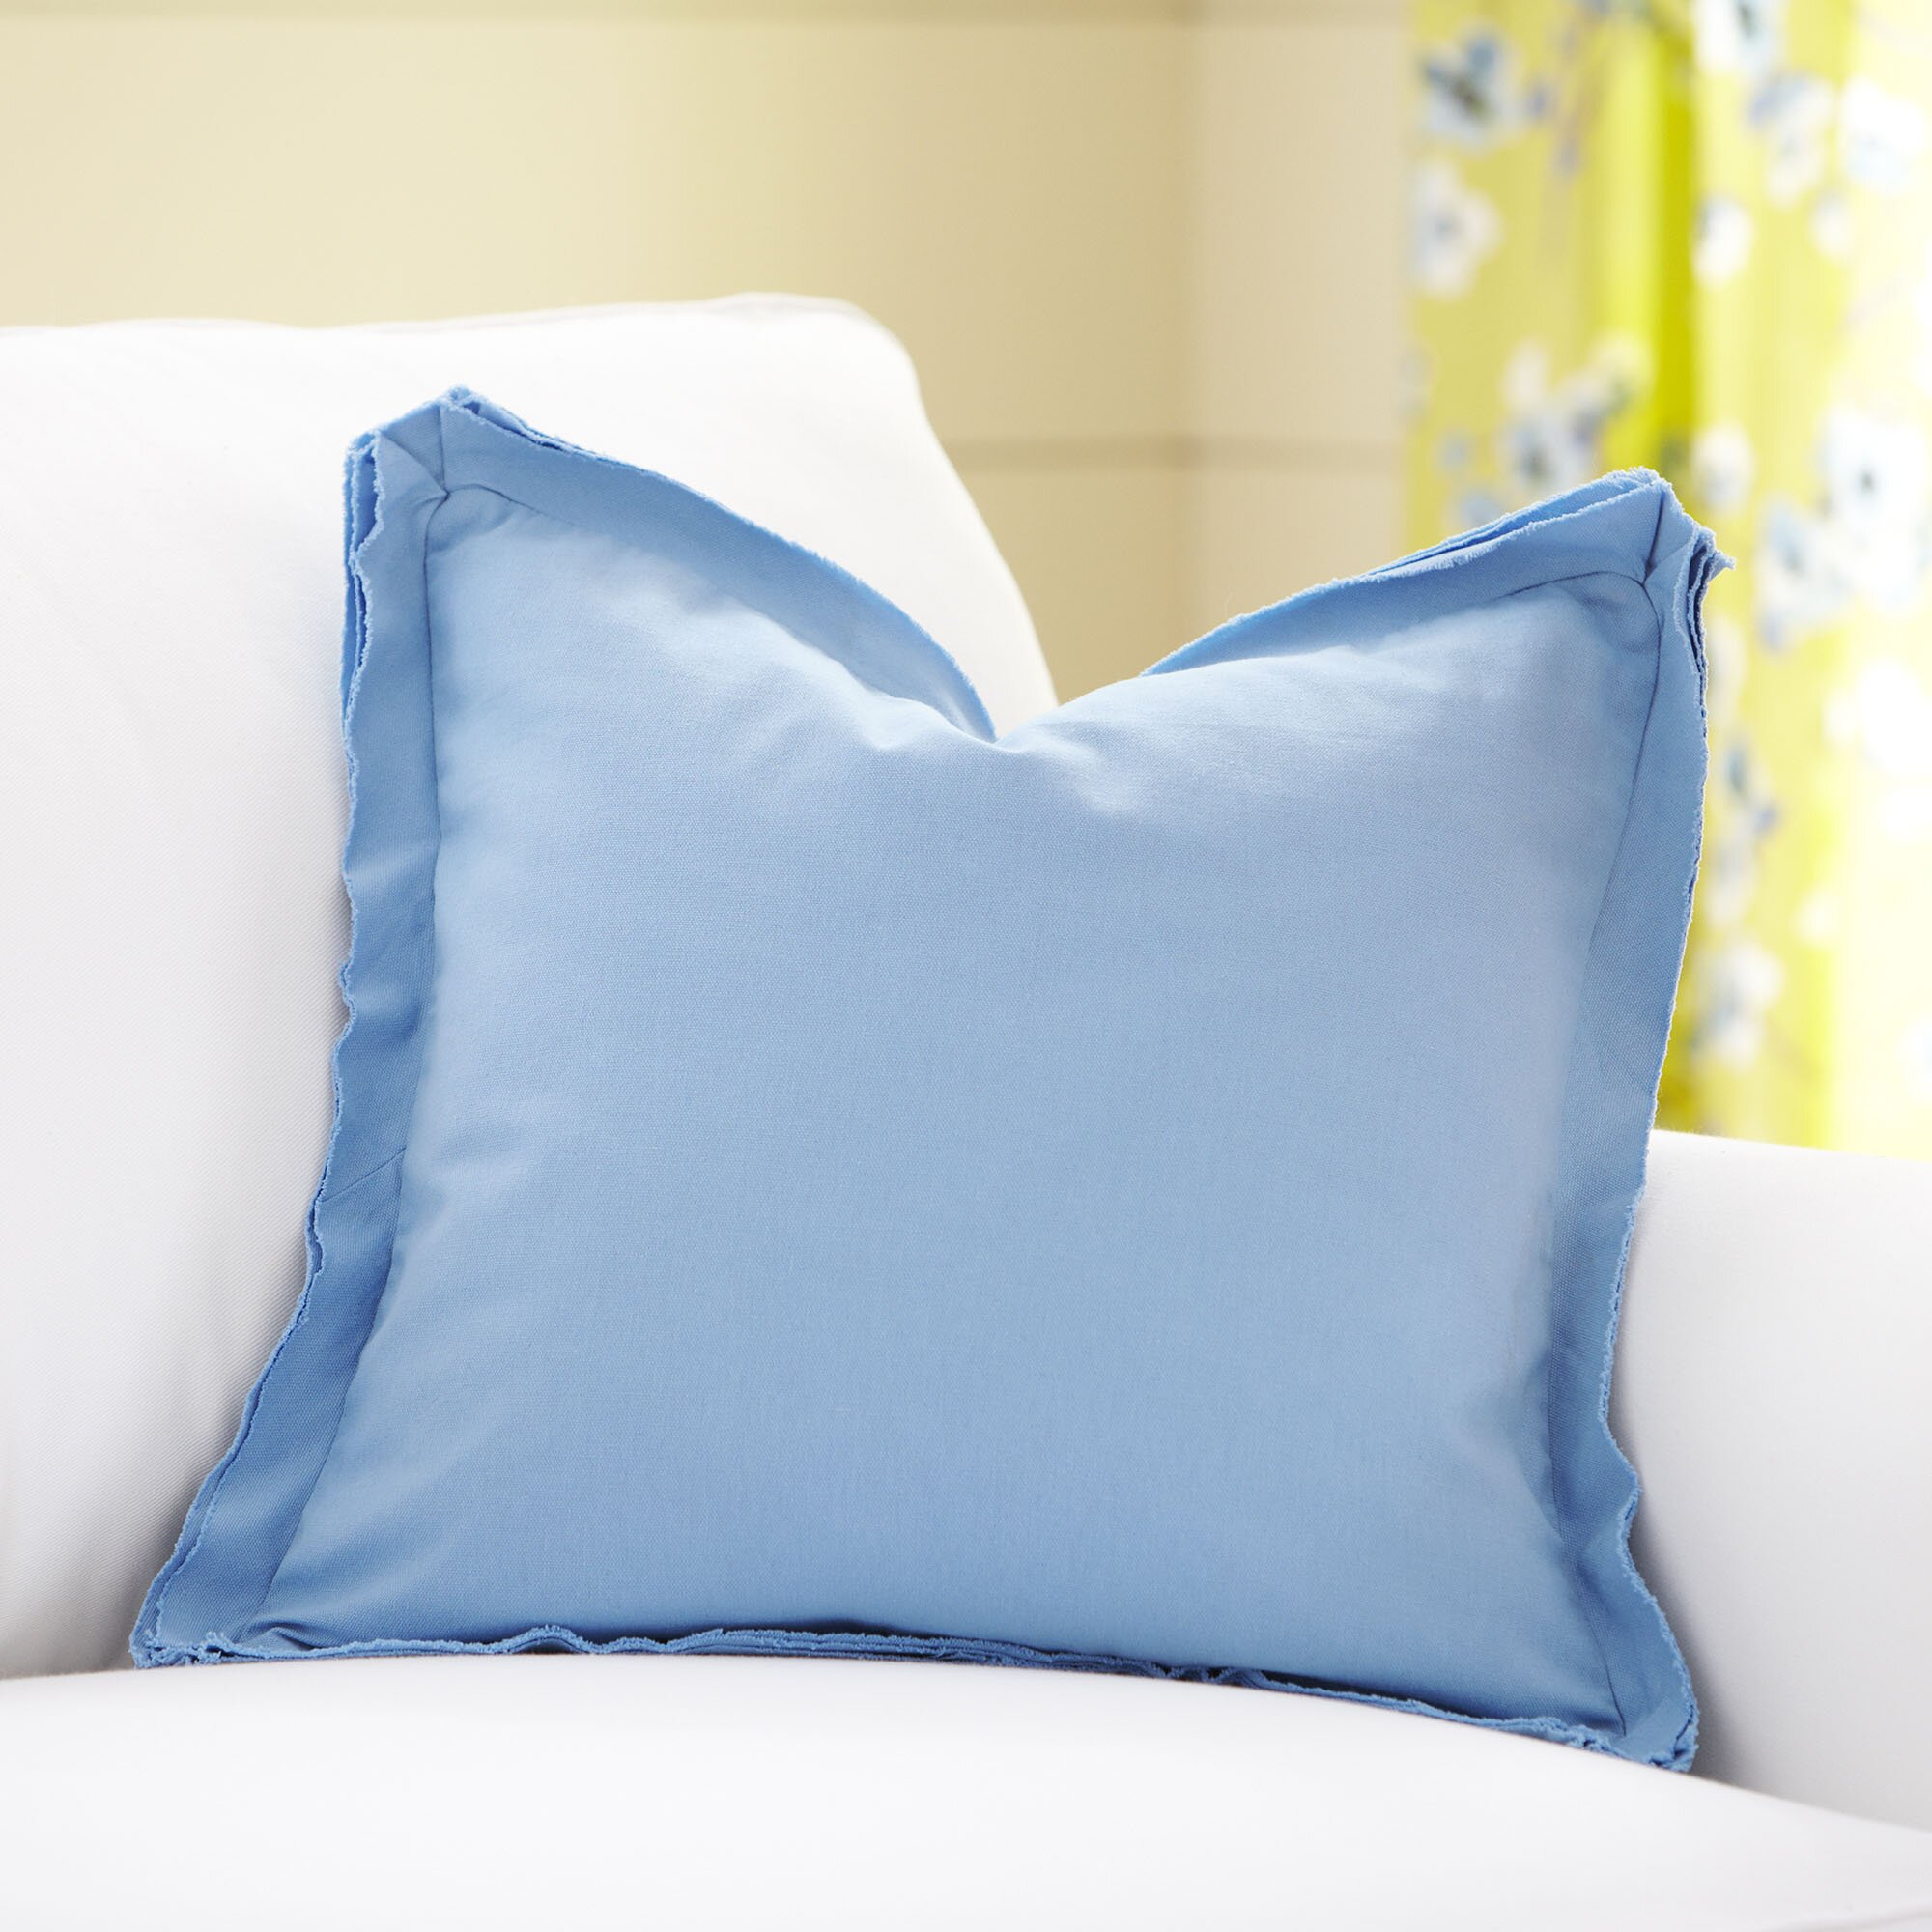 Birch Lane Joelle Pillow Cover & Reviews Wayfair